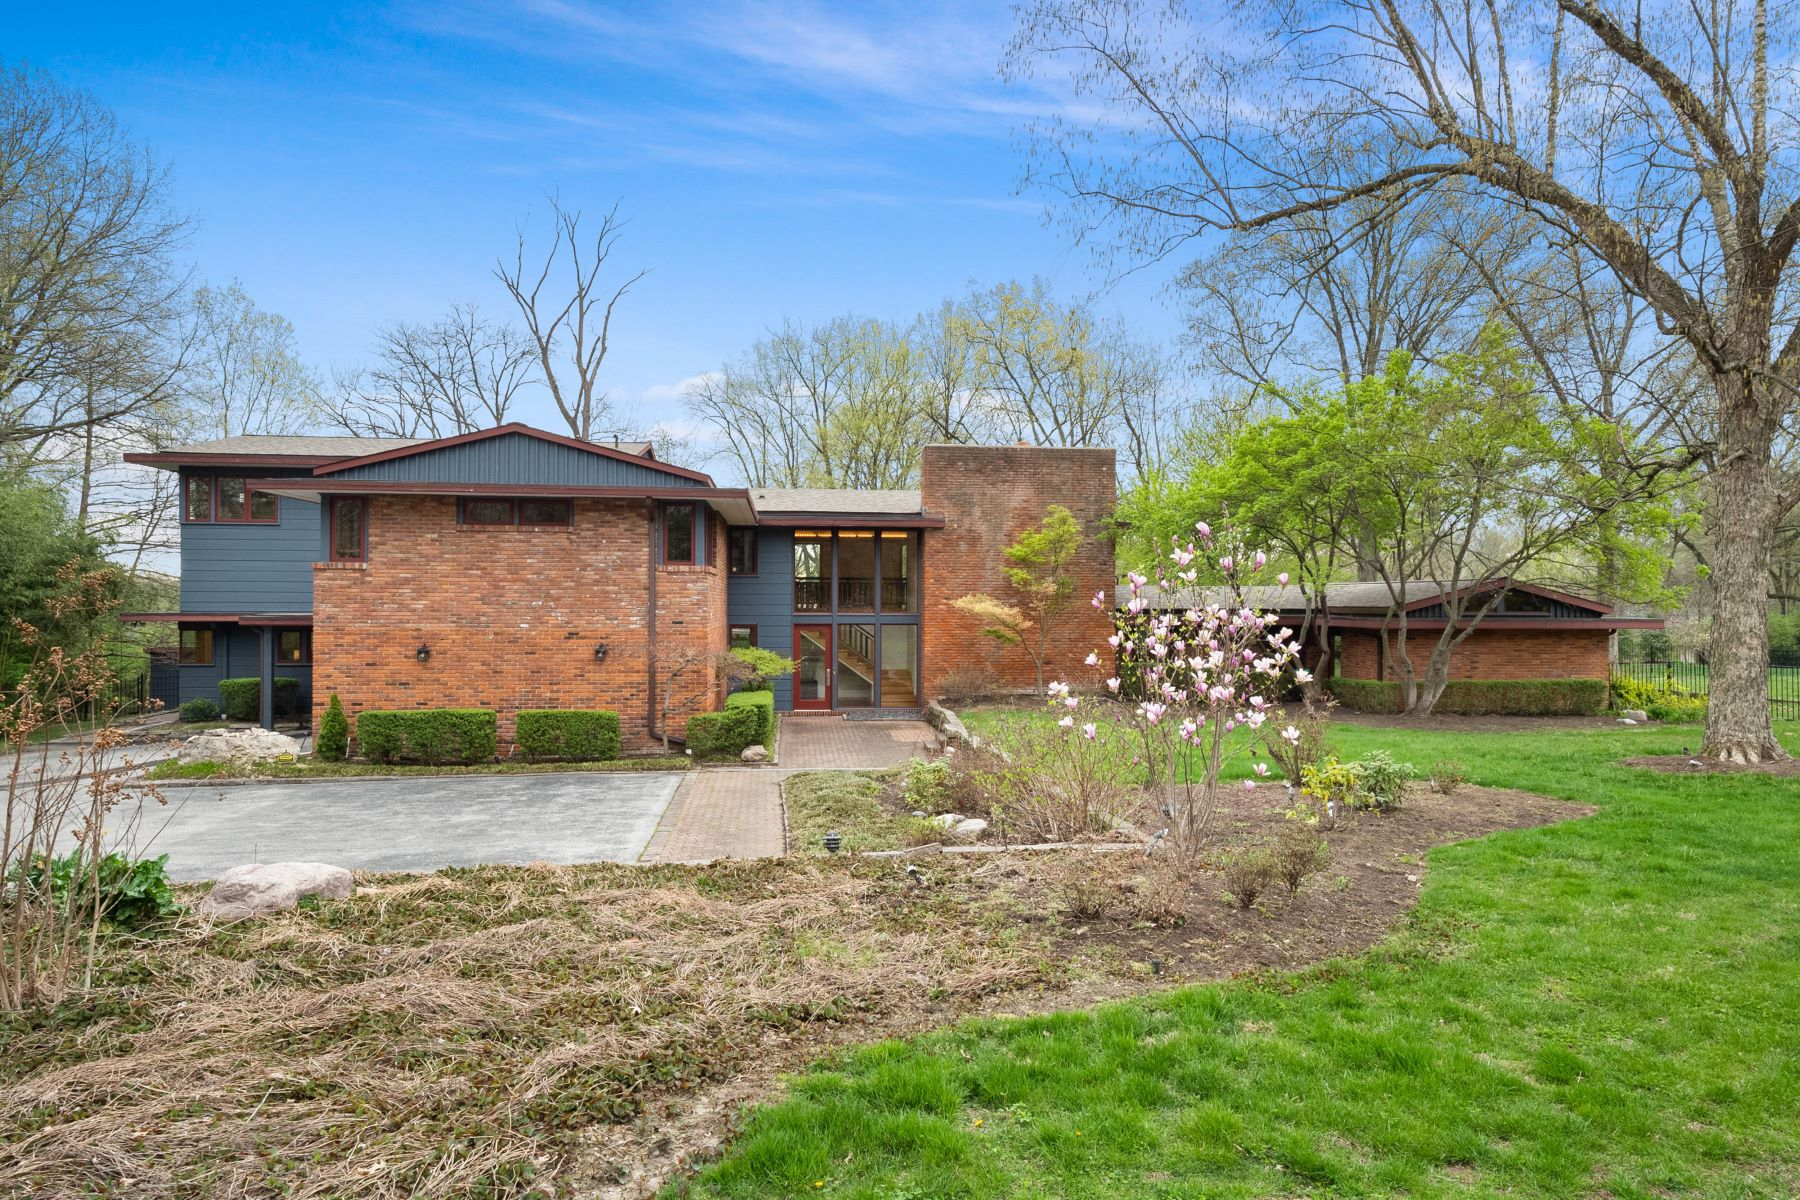 Single Family Homes for Sale at Important Mid-Century Home Designed by Ted Christner 1160 Lay Road Richmond Heights, Missouri 63124 United States